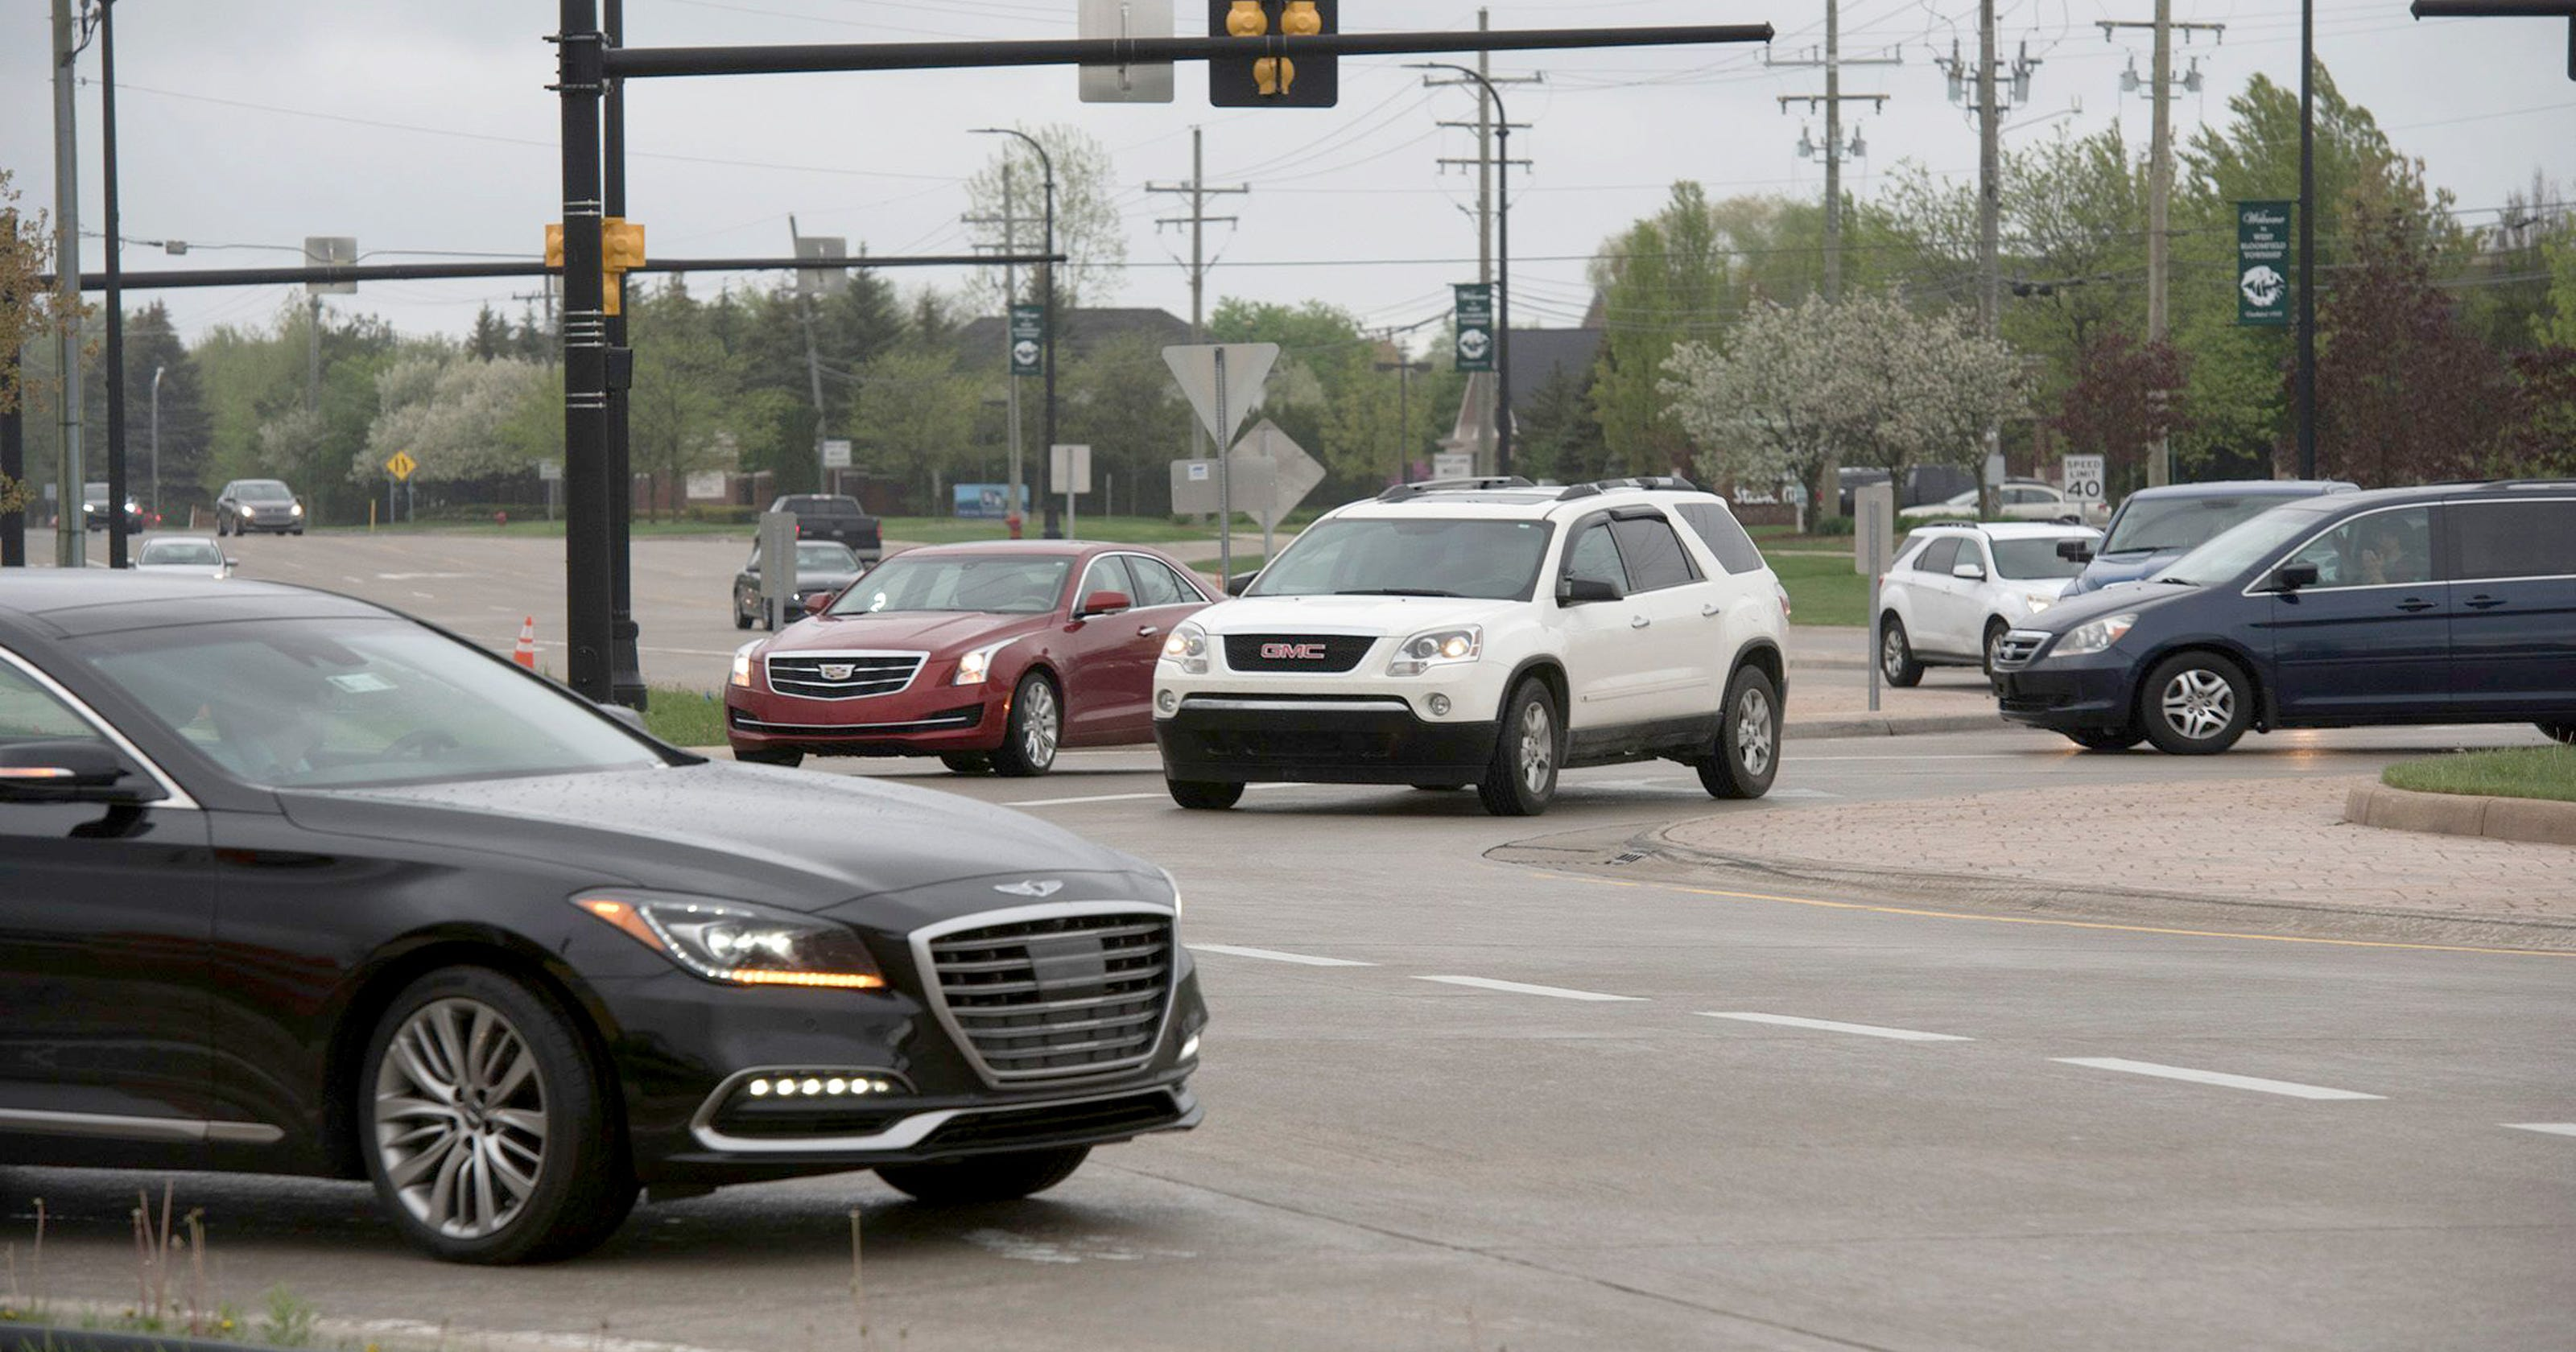 Zipper Merge Will Upset Other Drivers But You Should Do It